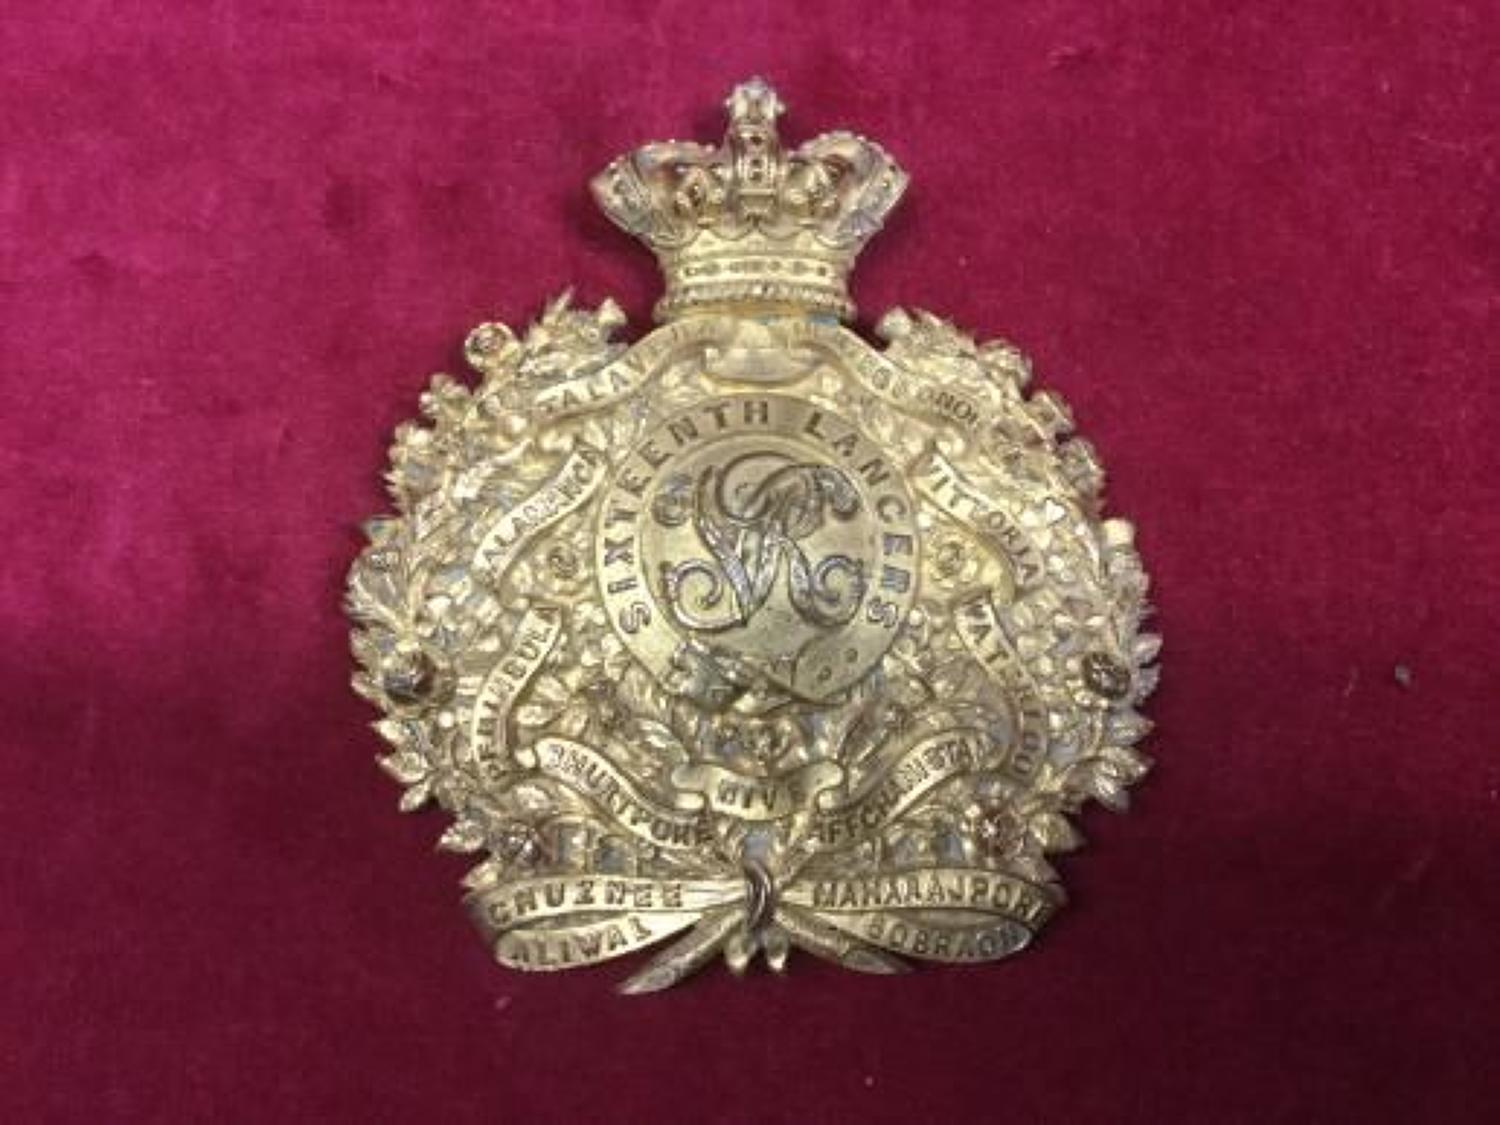 16th Lancers Undress Sabretache Badge